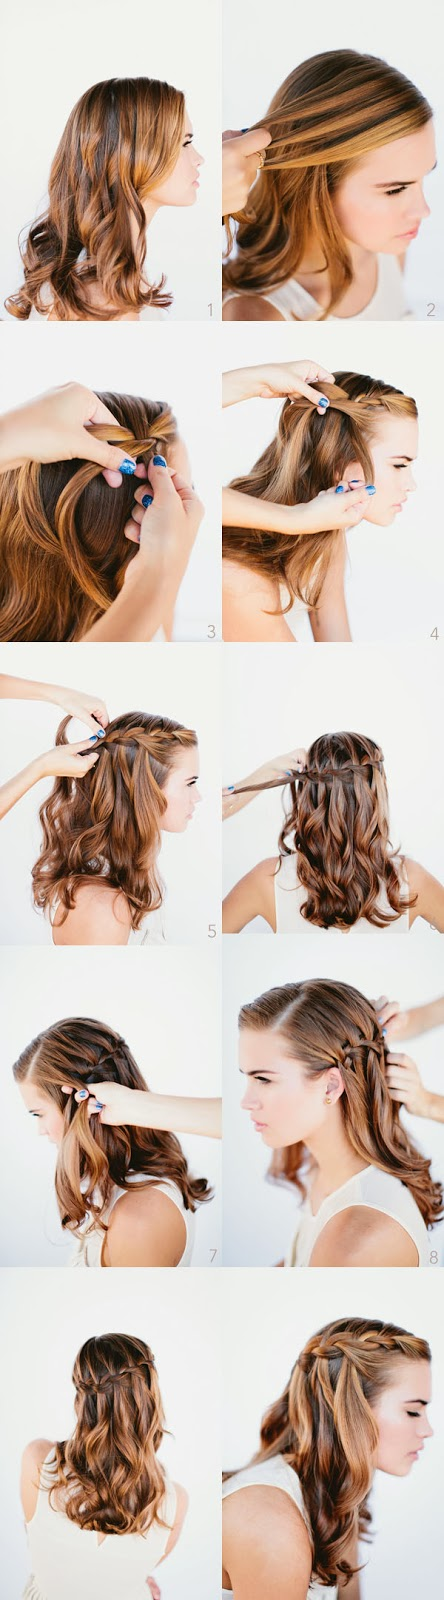 Tutorial Waterfall Braid Hairstyle